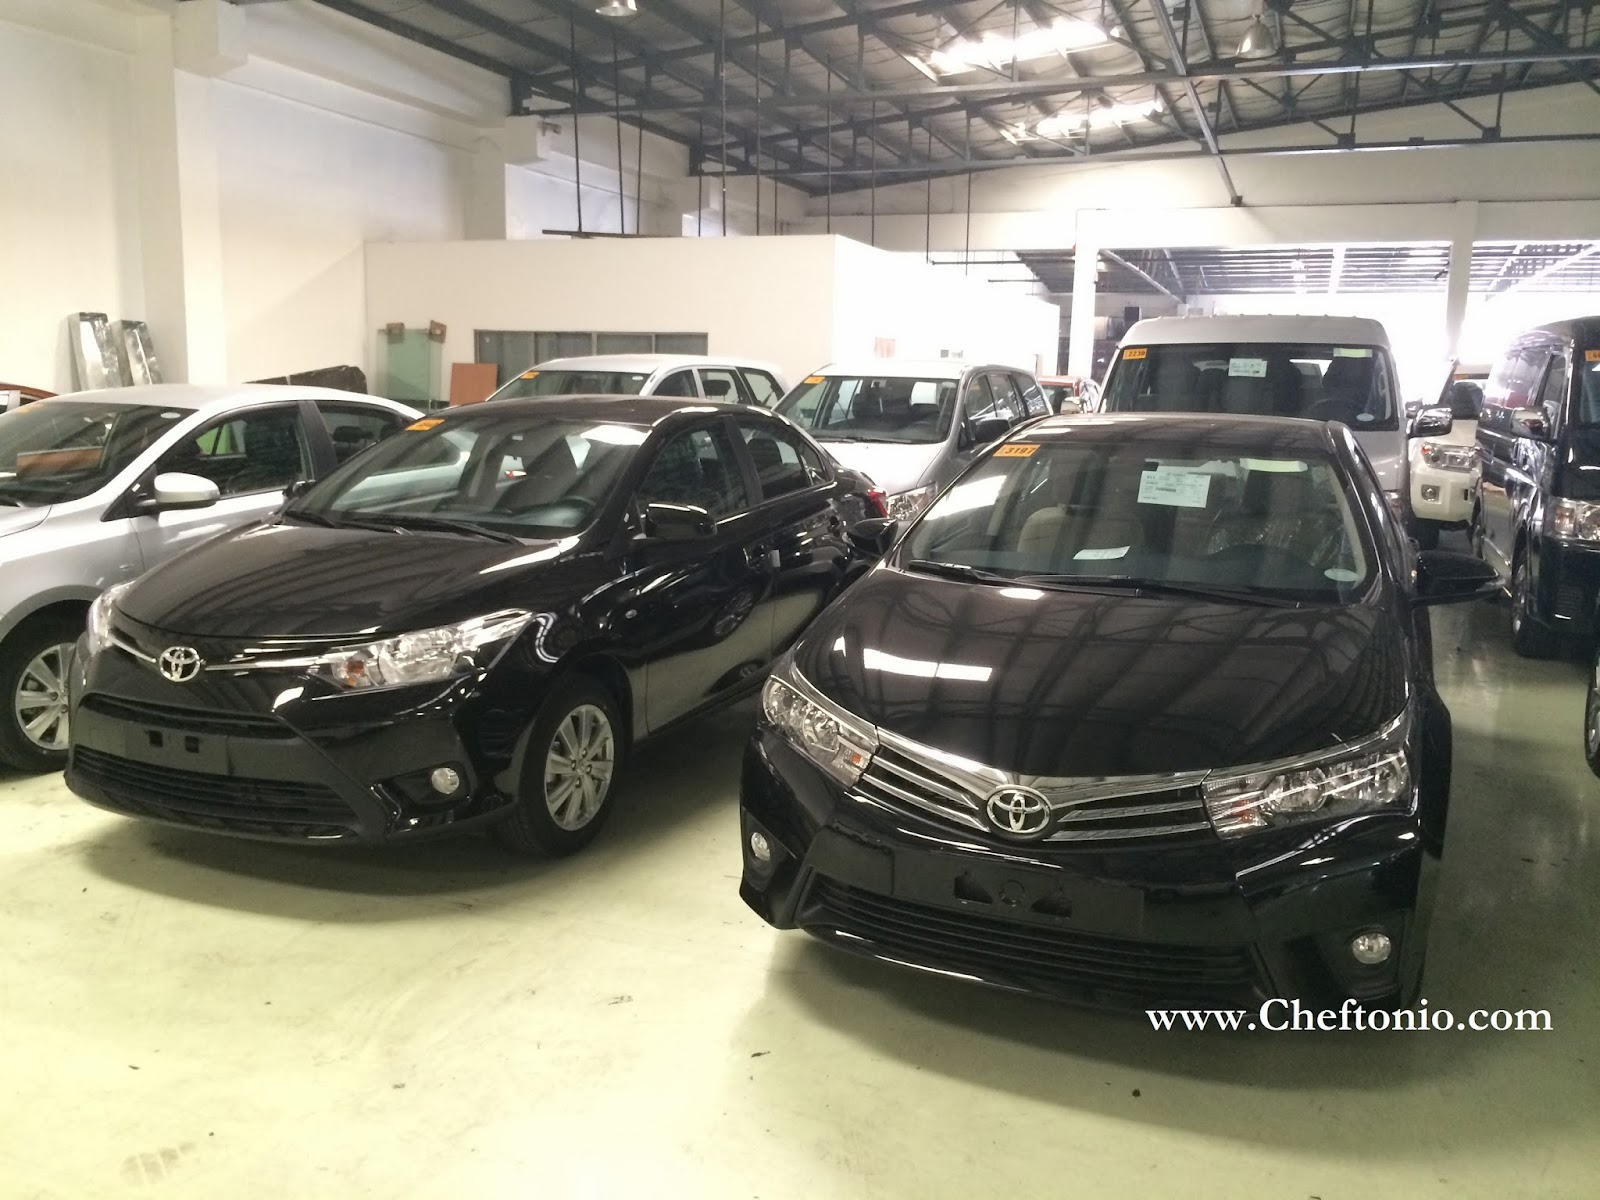 New Corolla Altis On Road Price Cara Menyetel Kopling Grand Avanza Toyota 2014 Colors Photos And